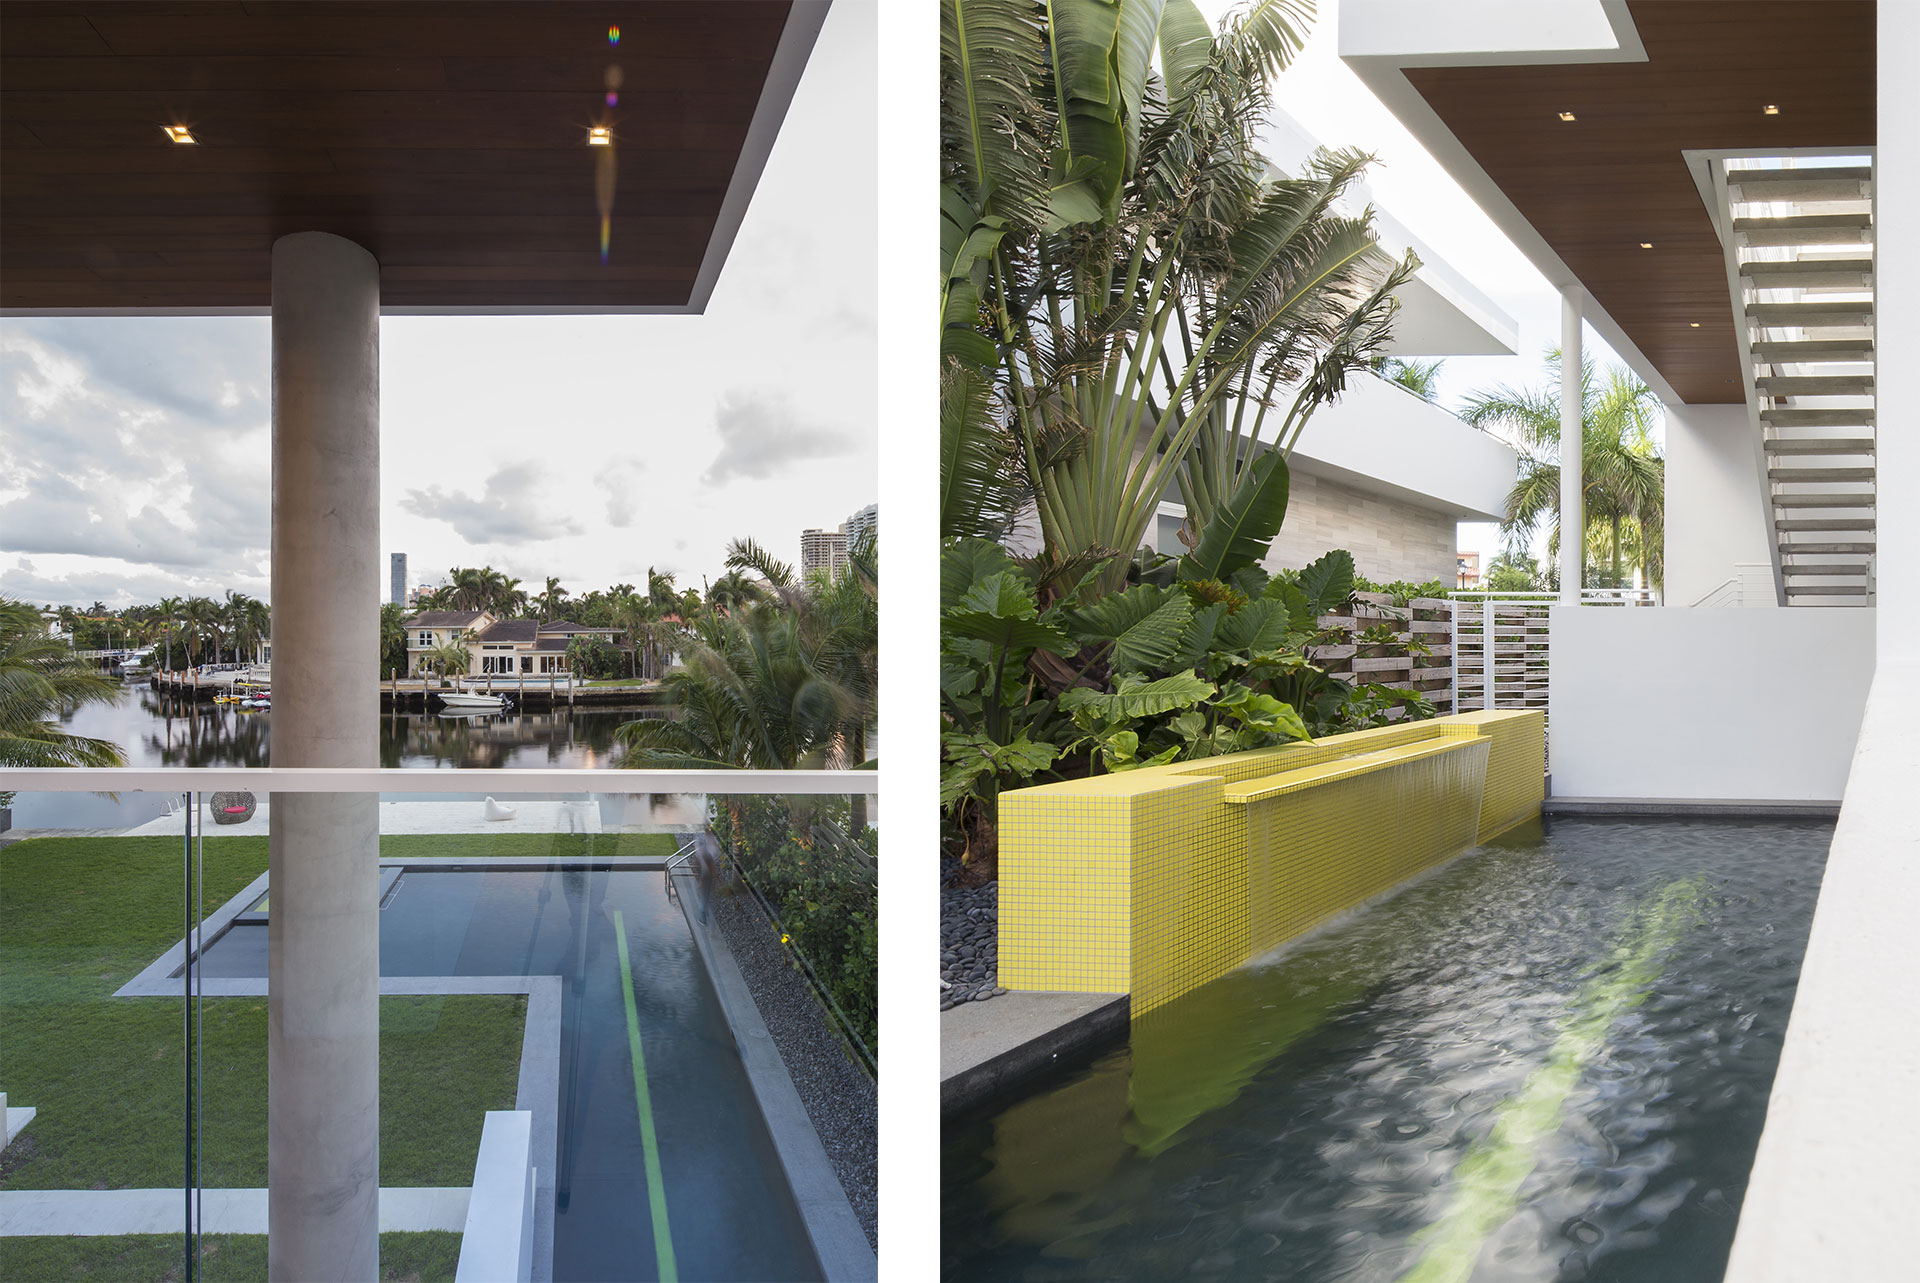 Swimming Pool Side View Exterior Architecture project in 484 North Parkway, Florida